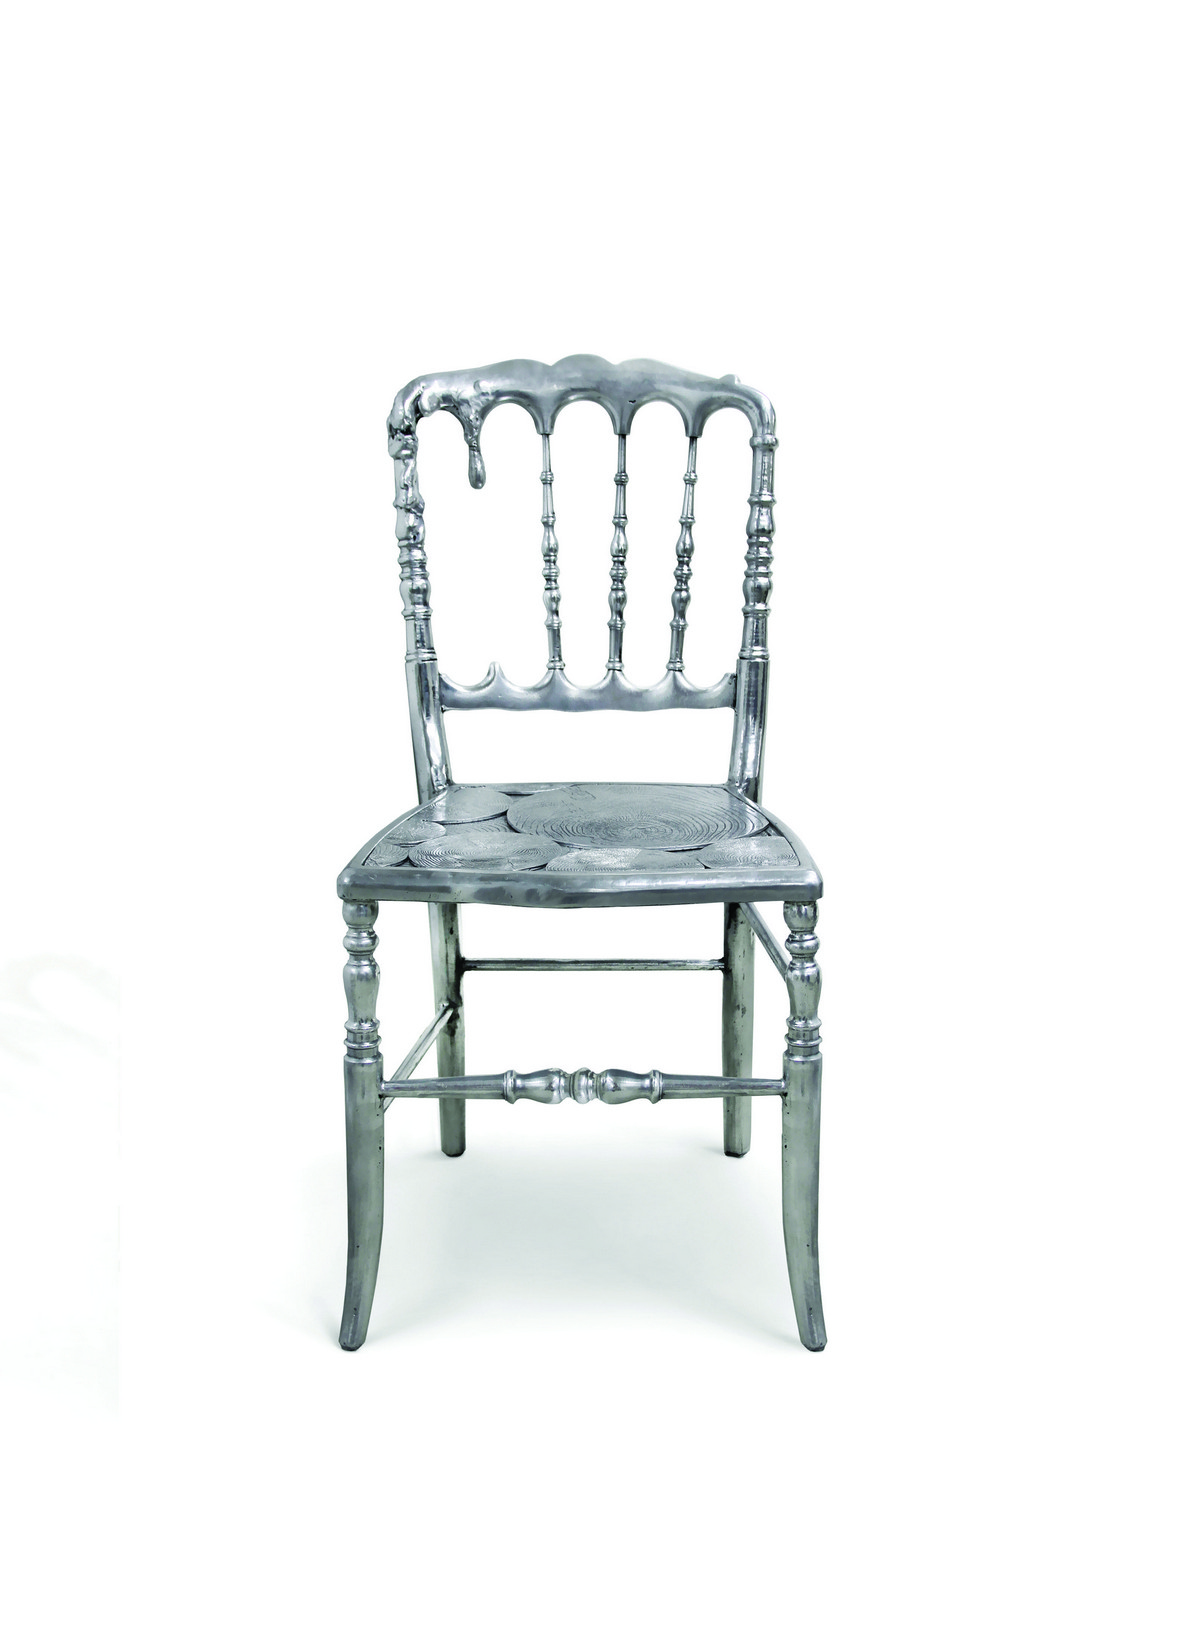 Maison et Objet: Luxury Dining Chairs By Covet House maison et objet Maison et Objet: Luxury Dining Chairs By Covet House emporium2